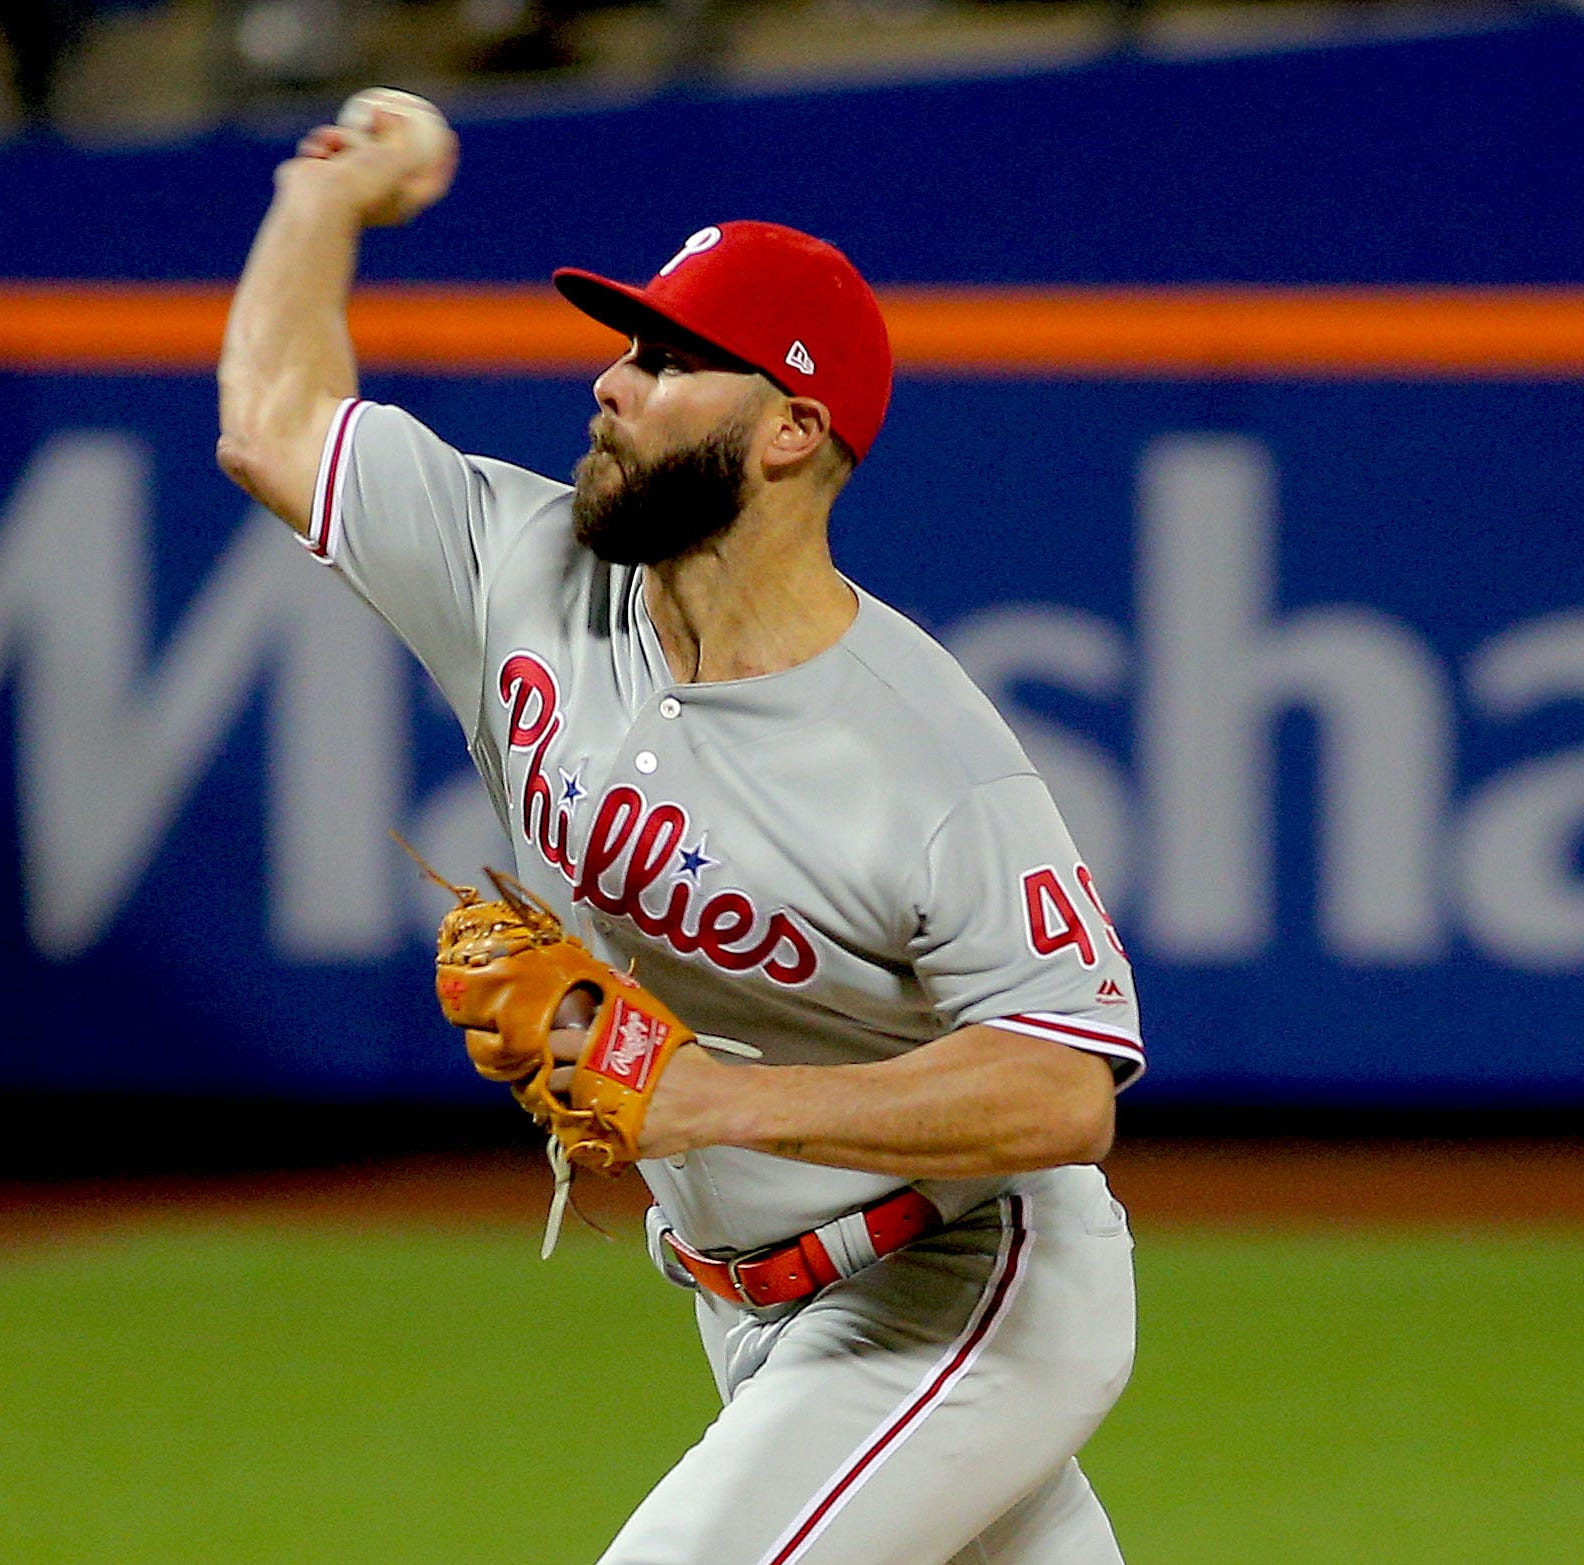 Phillies-Cubs lineup announced as Jake Arrieta faces former team